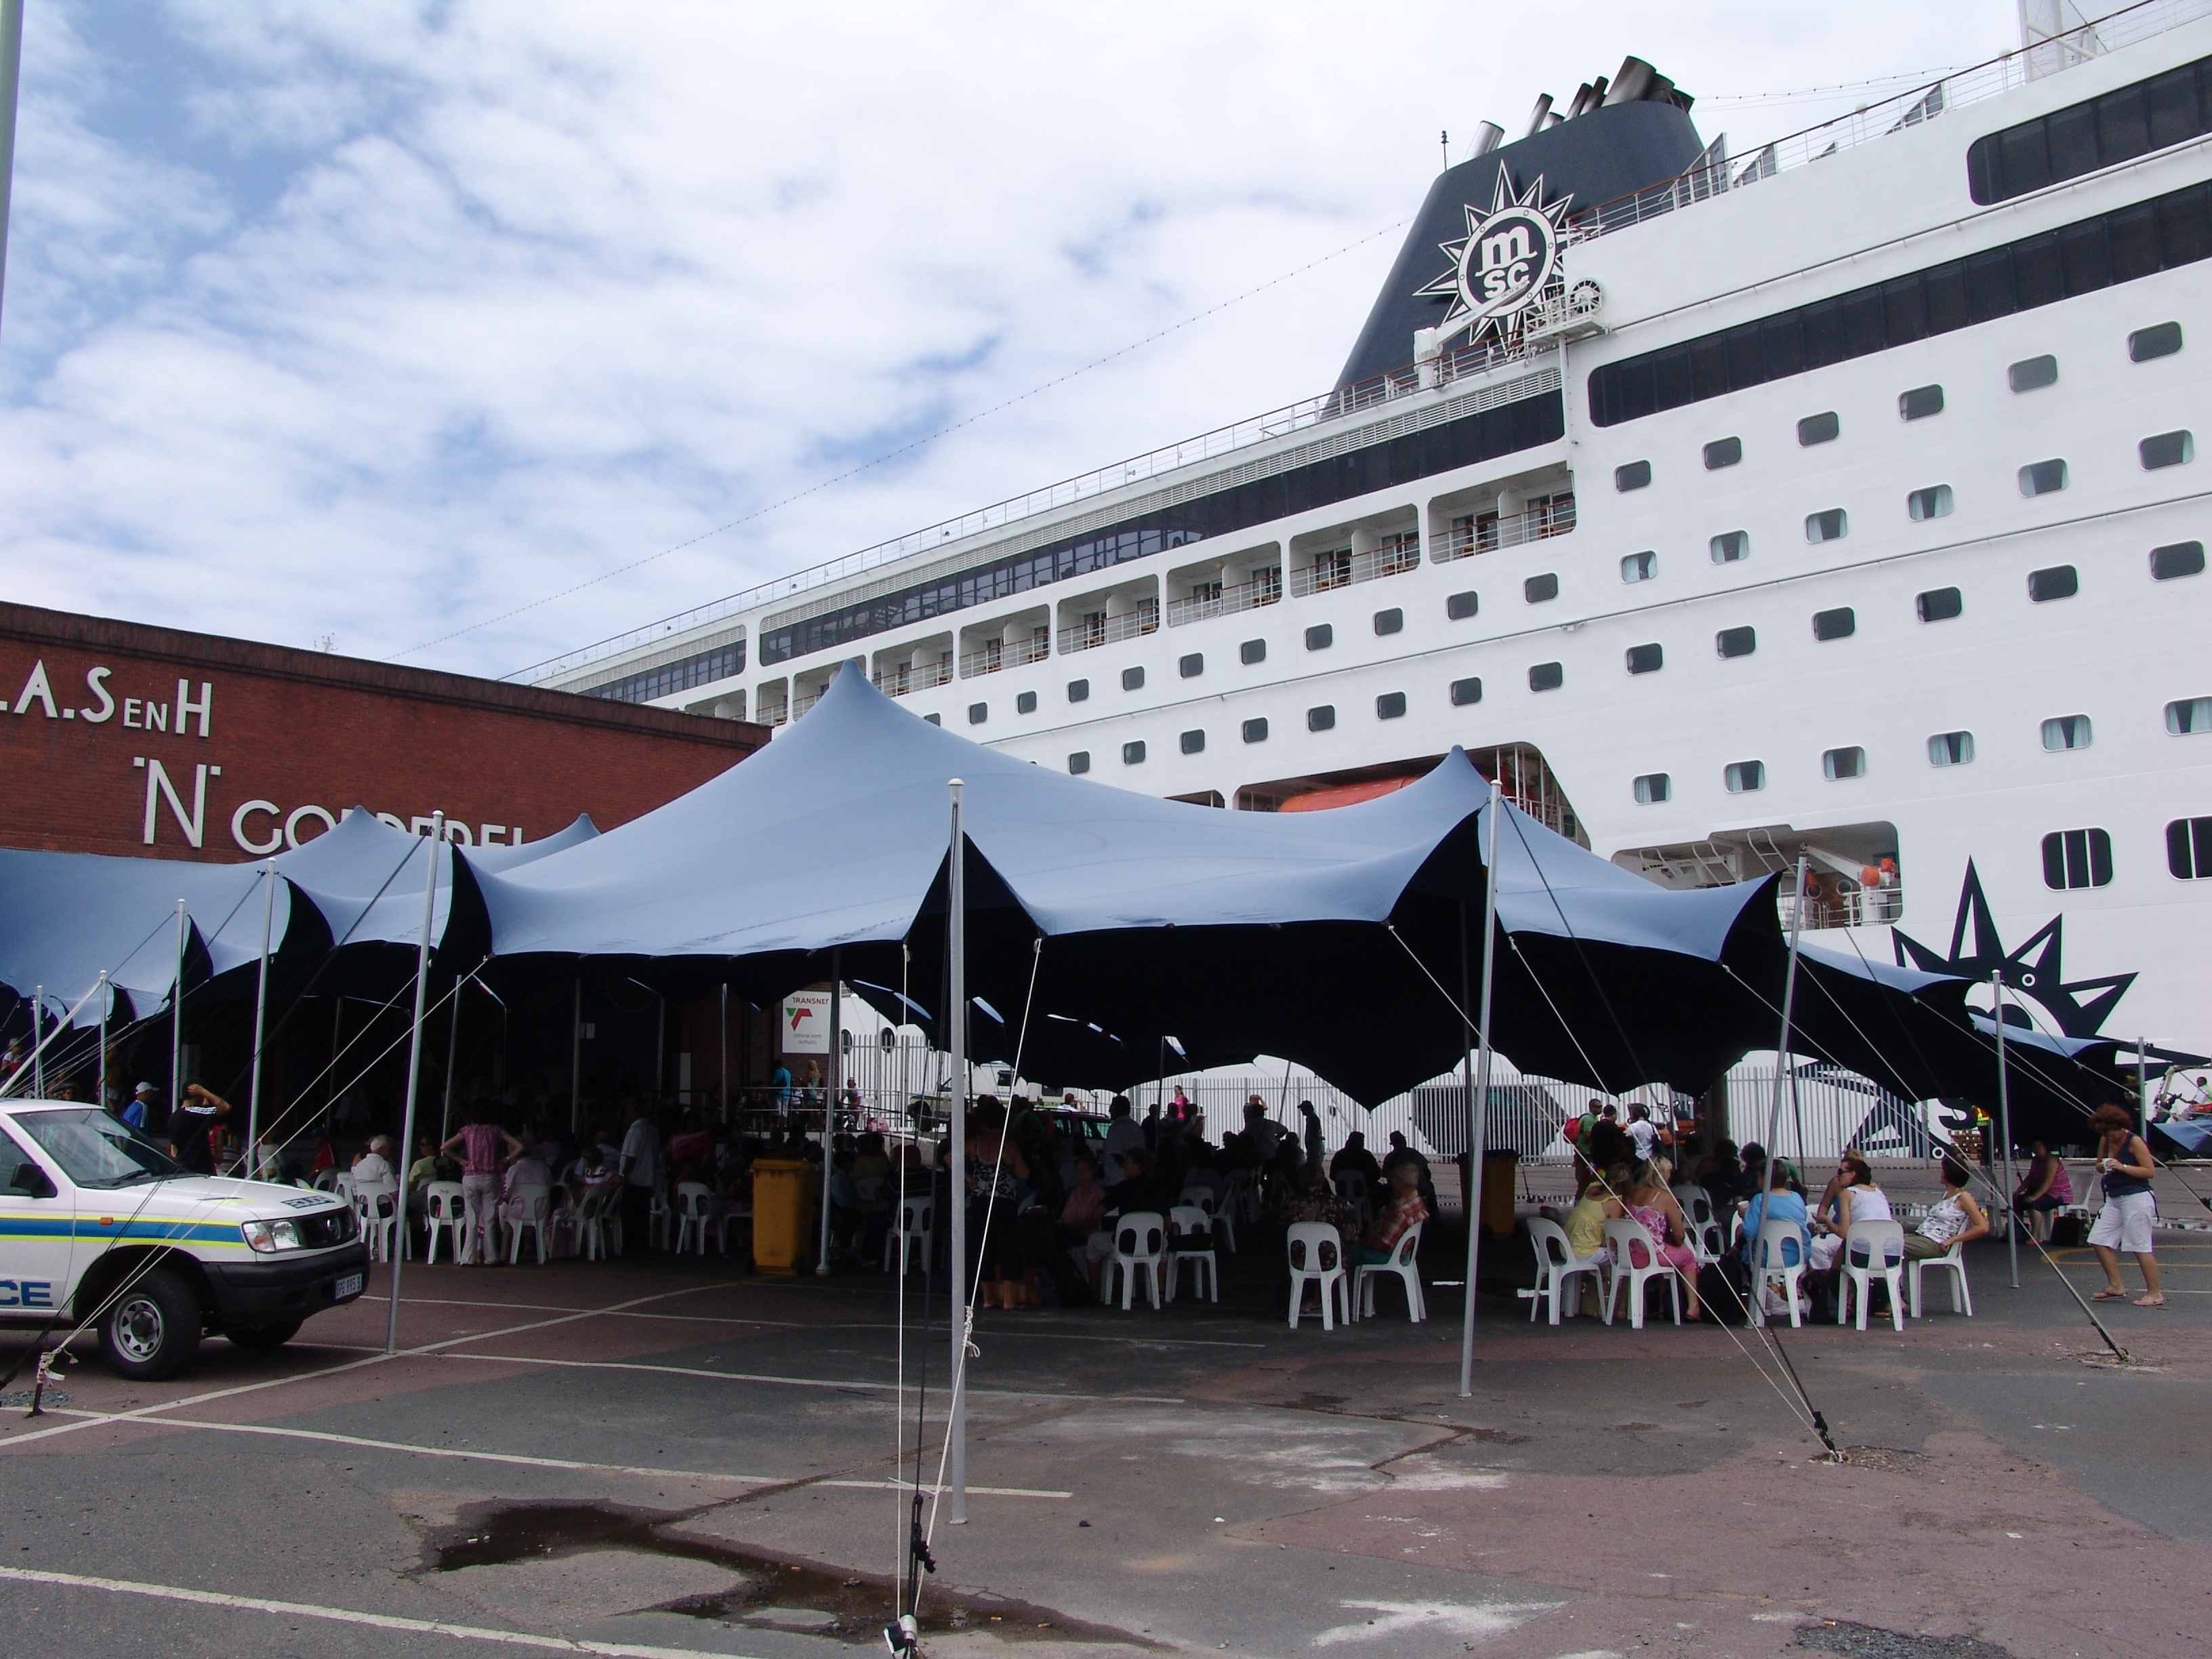 Boarding The Sinfonia In Durban Harbour